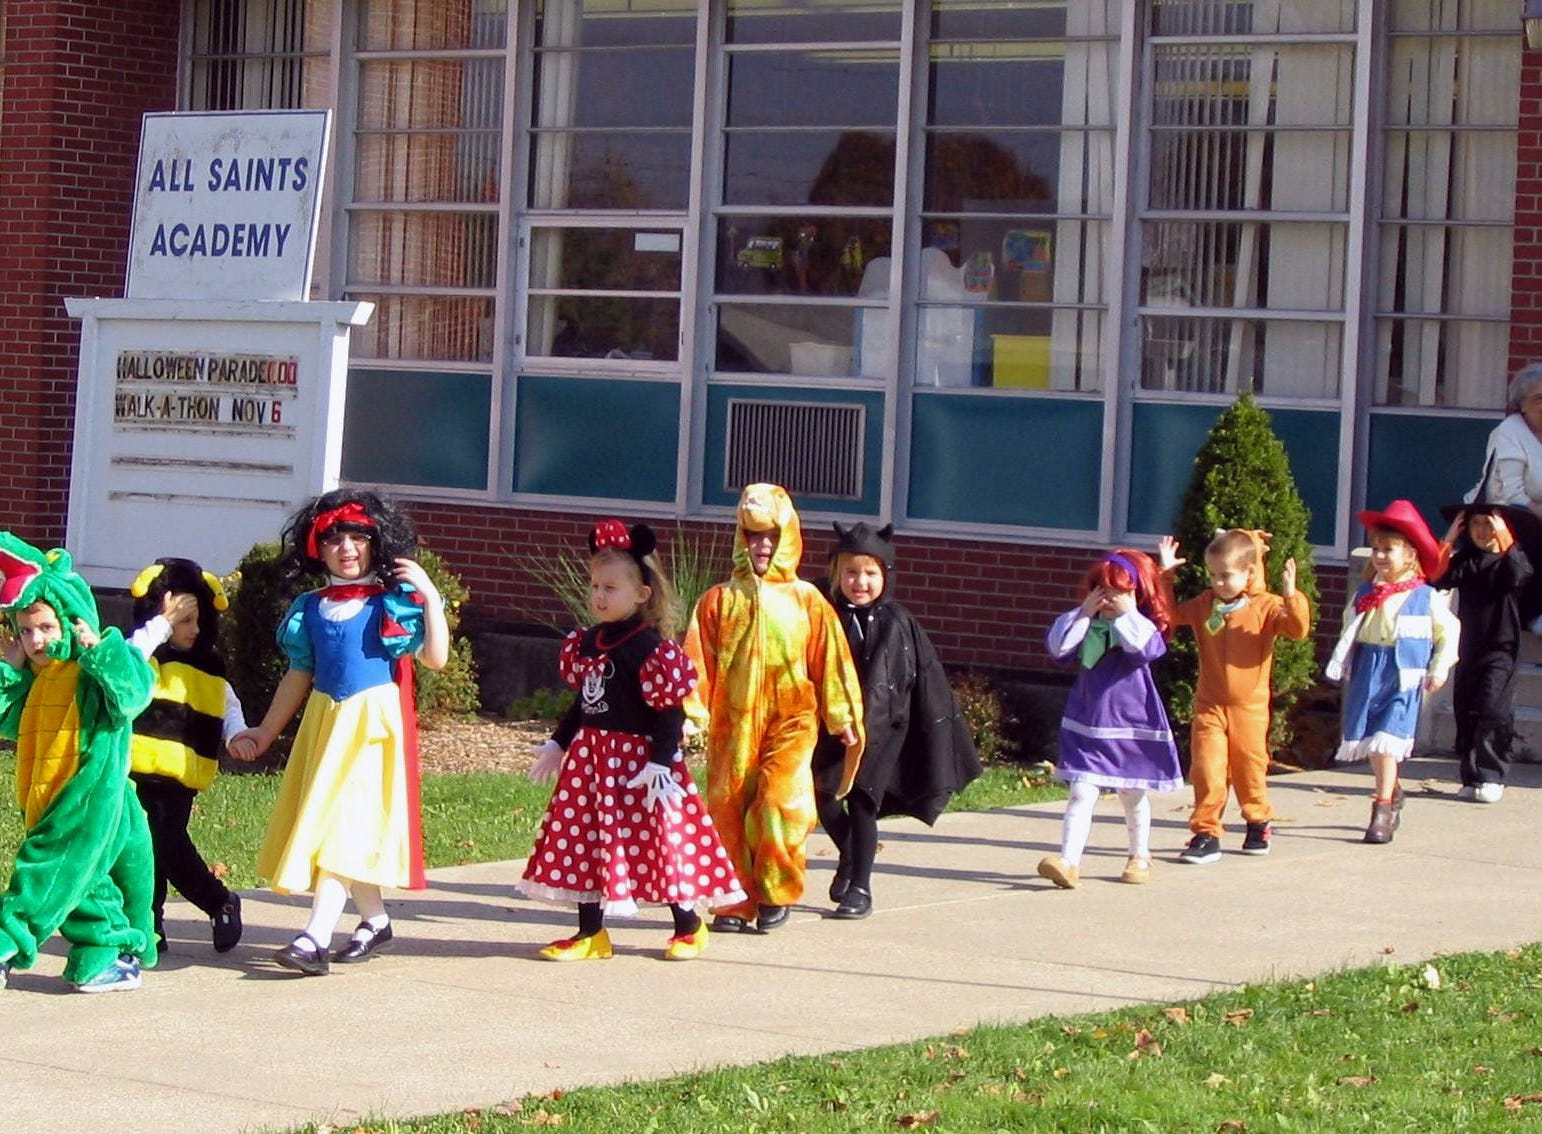 2004: Costumed youngsters march Friday in the annual Halloween Parade at All Saints Academy in Corning. About 80 preschoolers through third-graders took part in the parade, Principal Rose Ann Ewanyk said. Second-graders dressed up as saints, and third-graders were dressed as nursery-rhyme characters or their favorite book characters, she said.